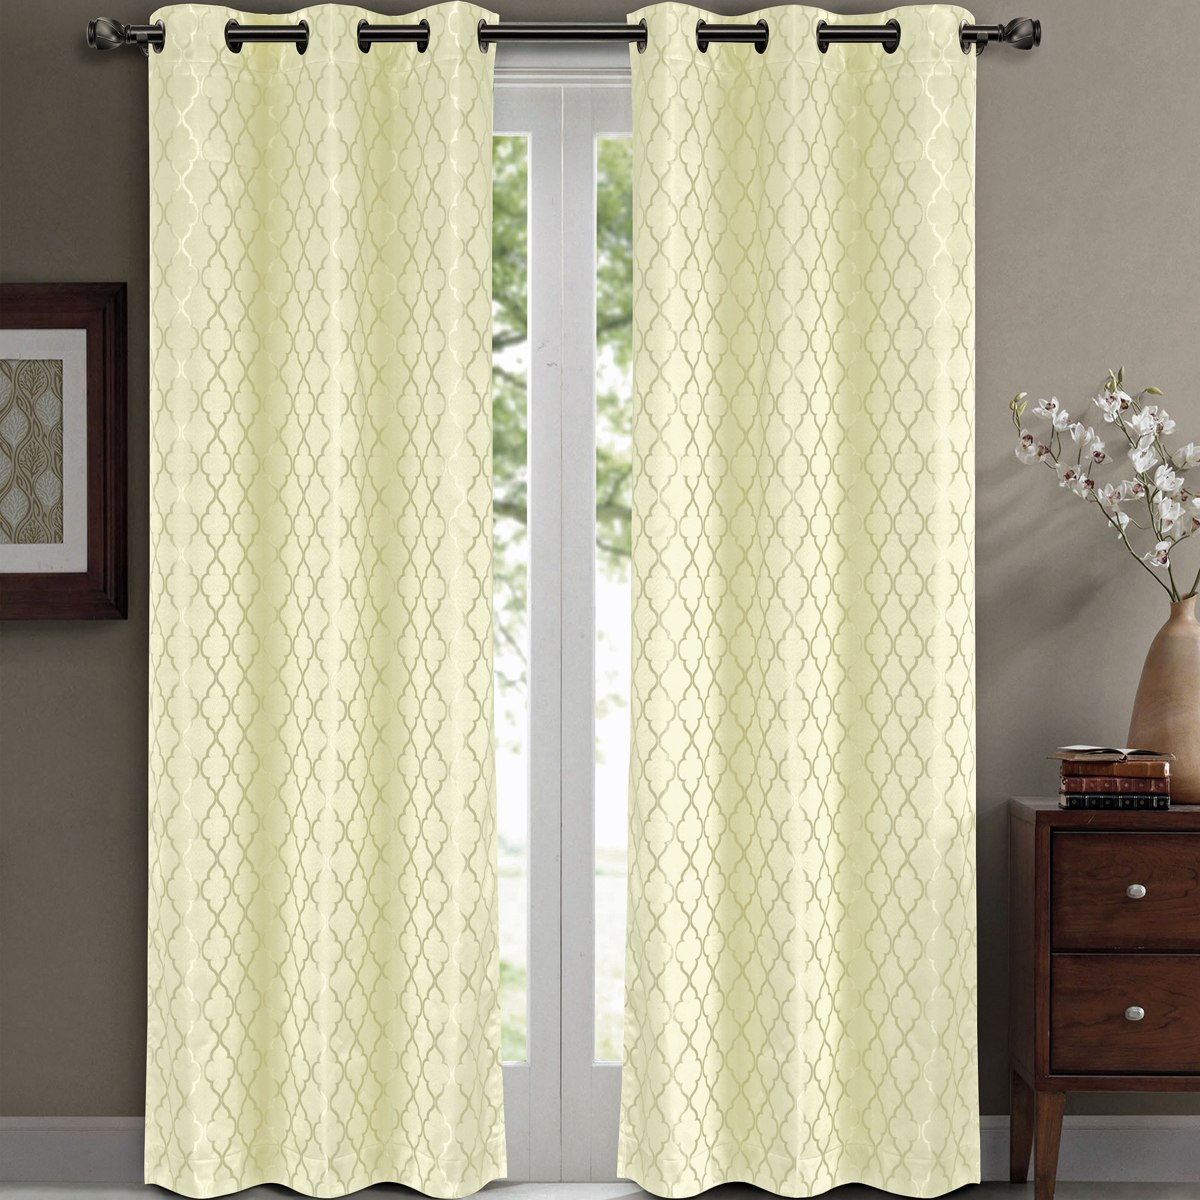 """Pair ( Set of 2) Willow Thermal-Insulated Blackout Curtain Panels - White - W84 x L63"""""""